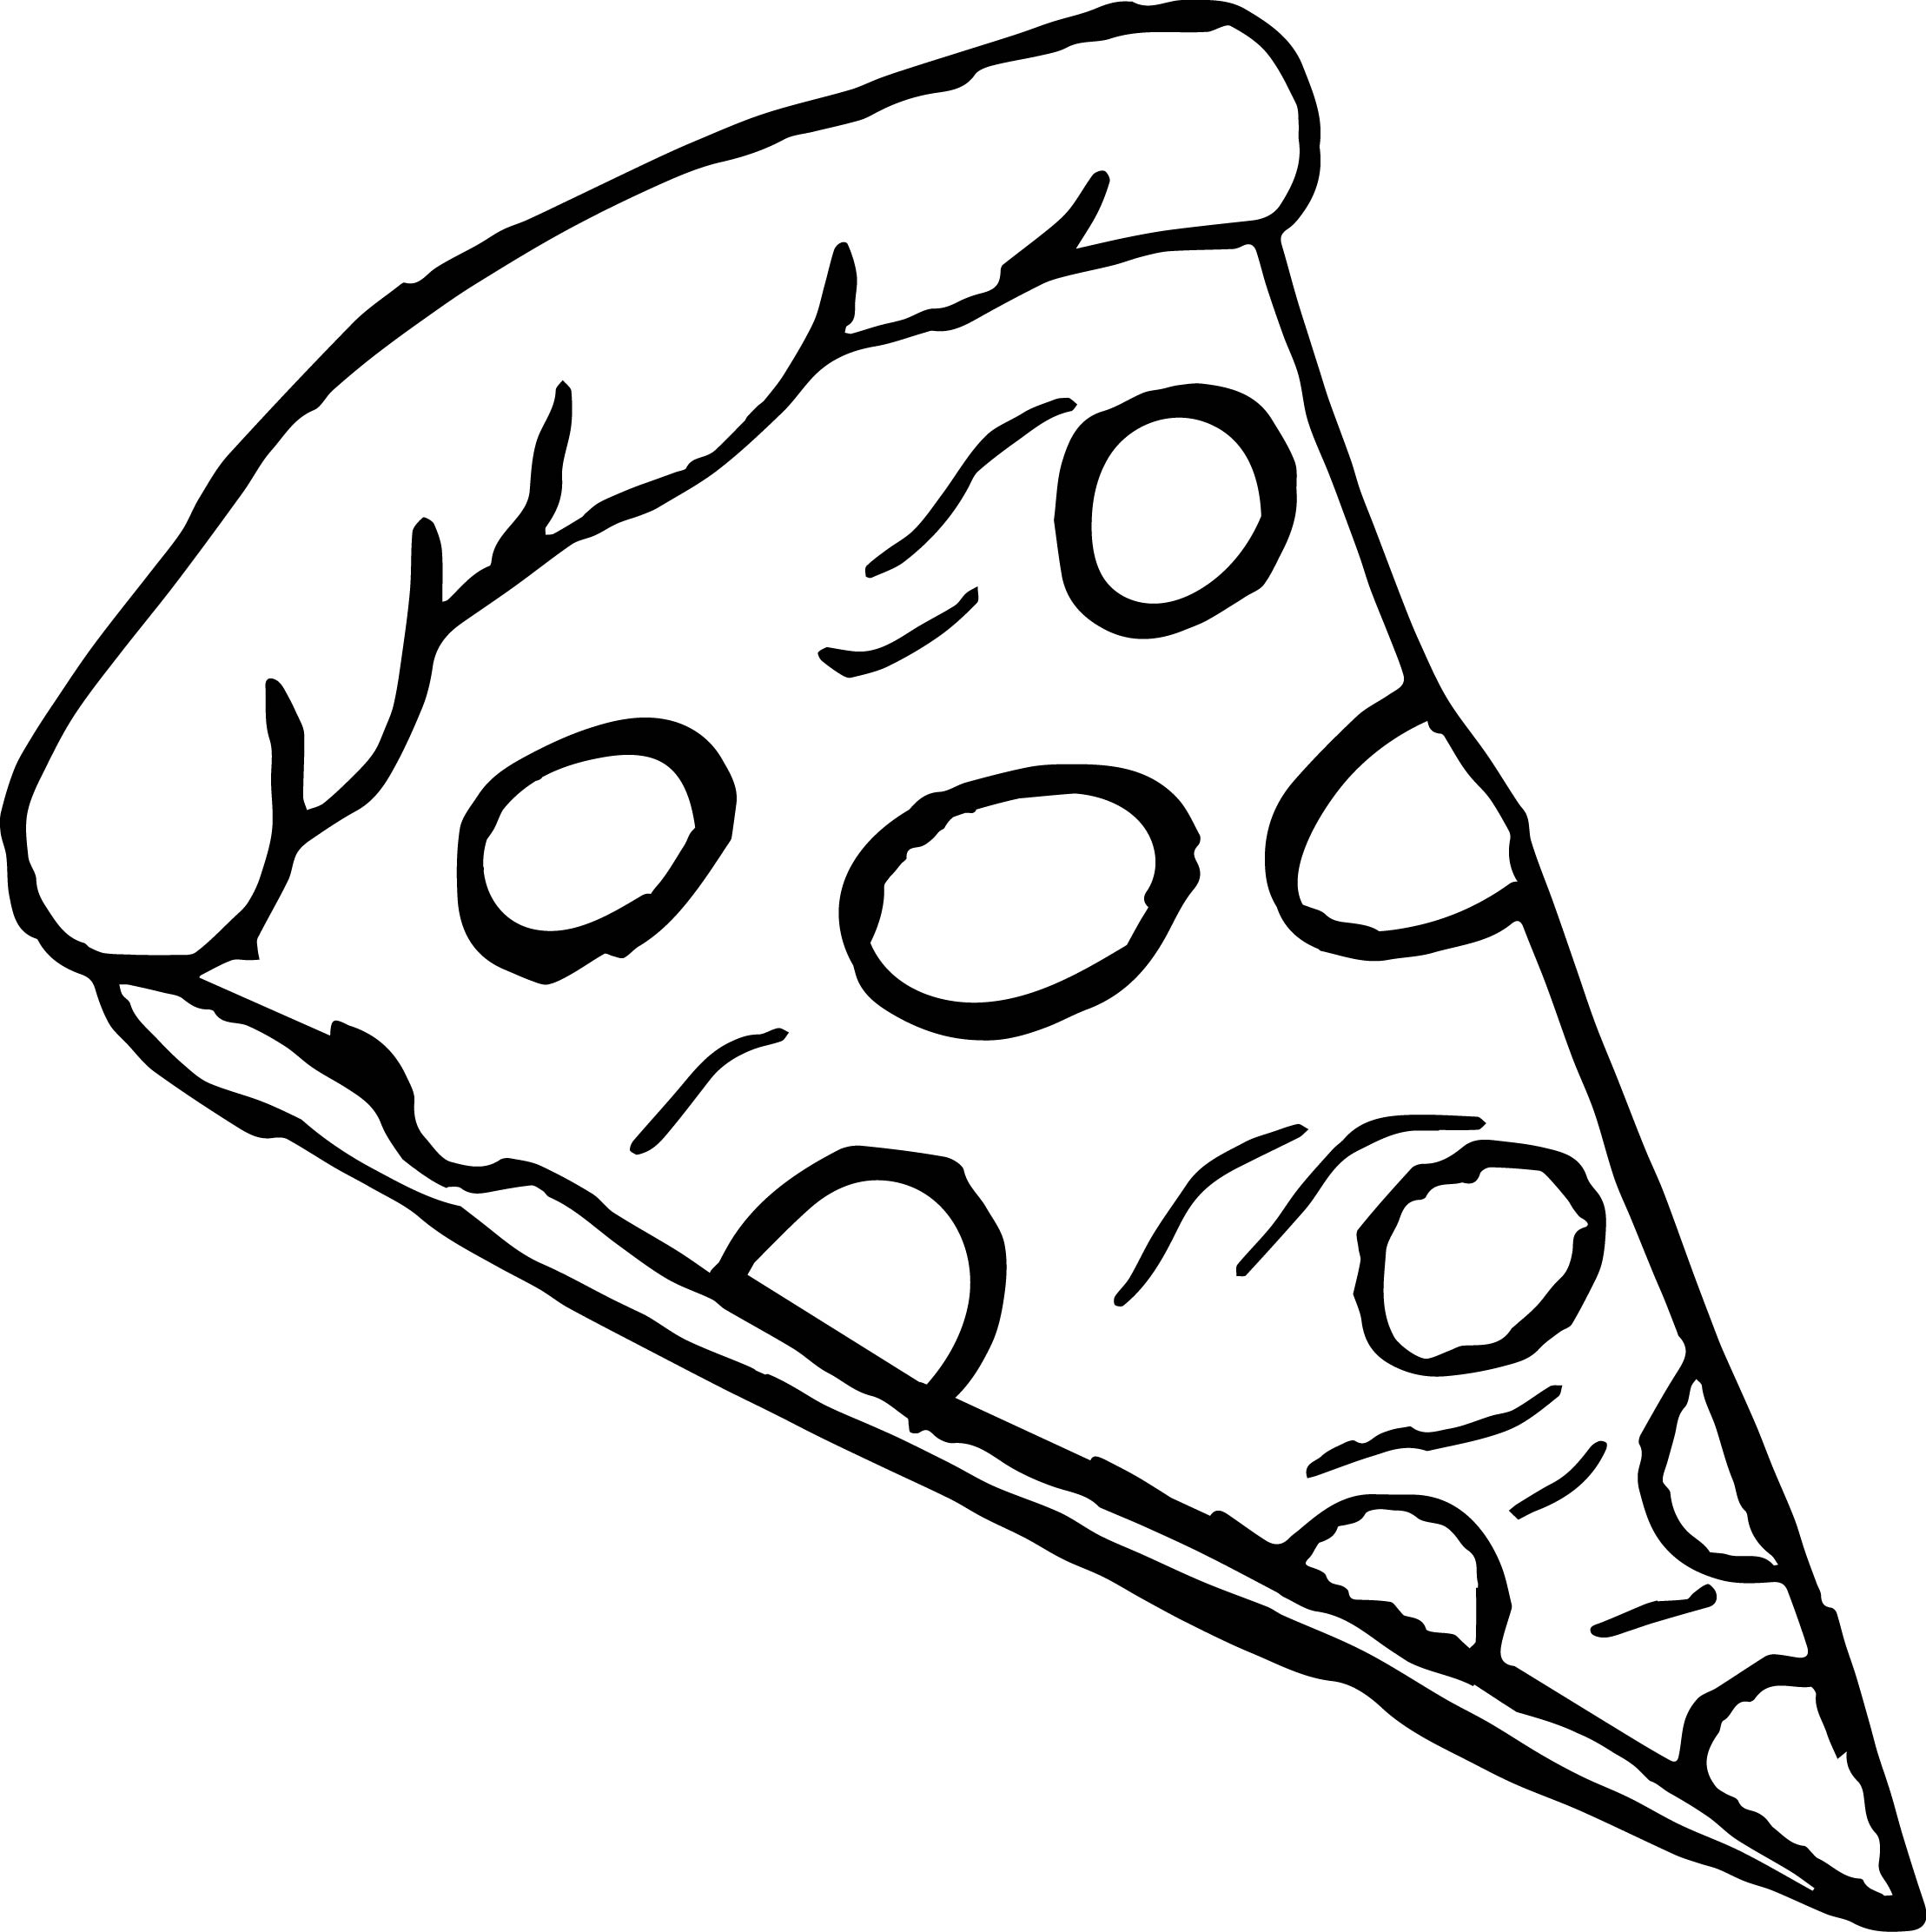 2217x2224 Just Arrived Make A Pizza Coloring Page Jacb Me